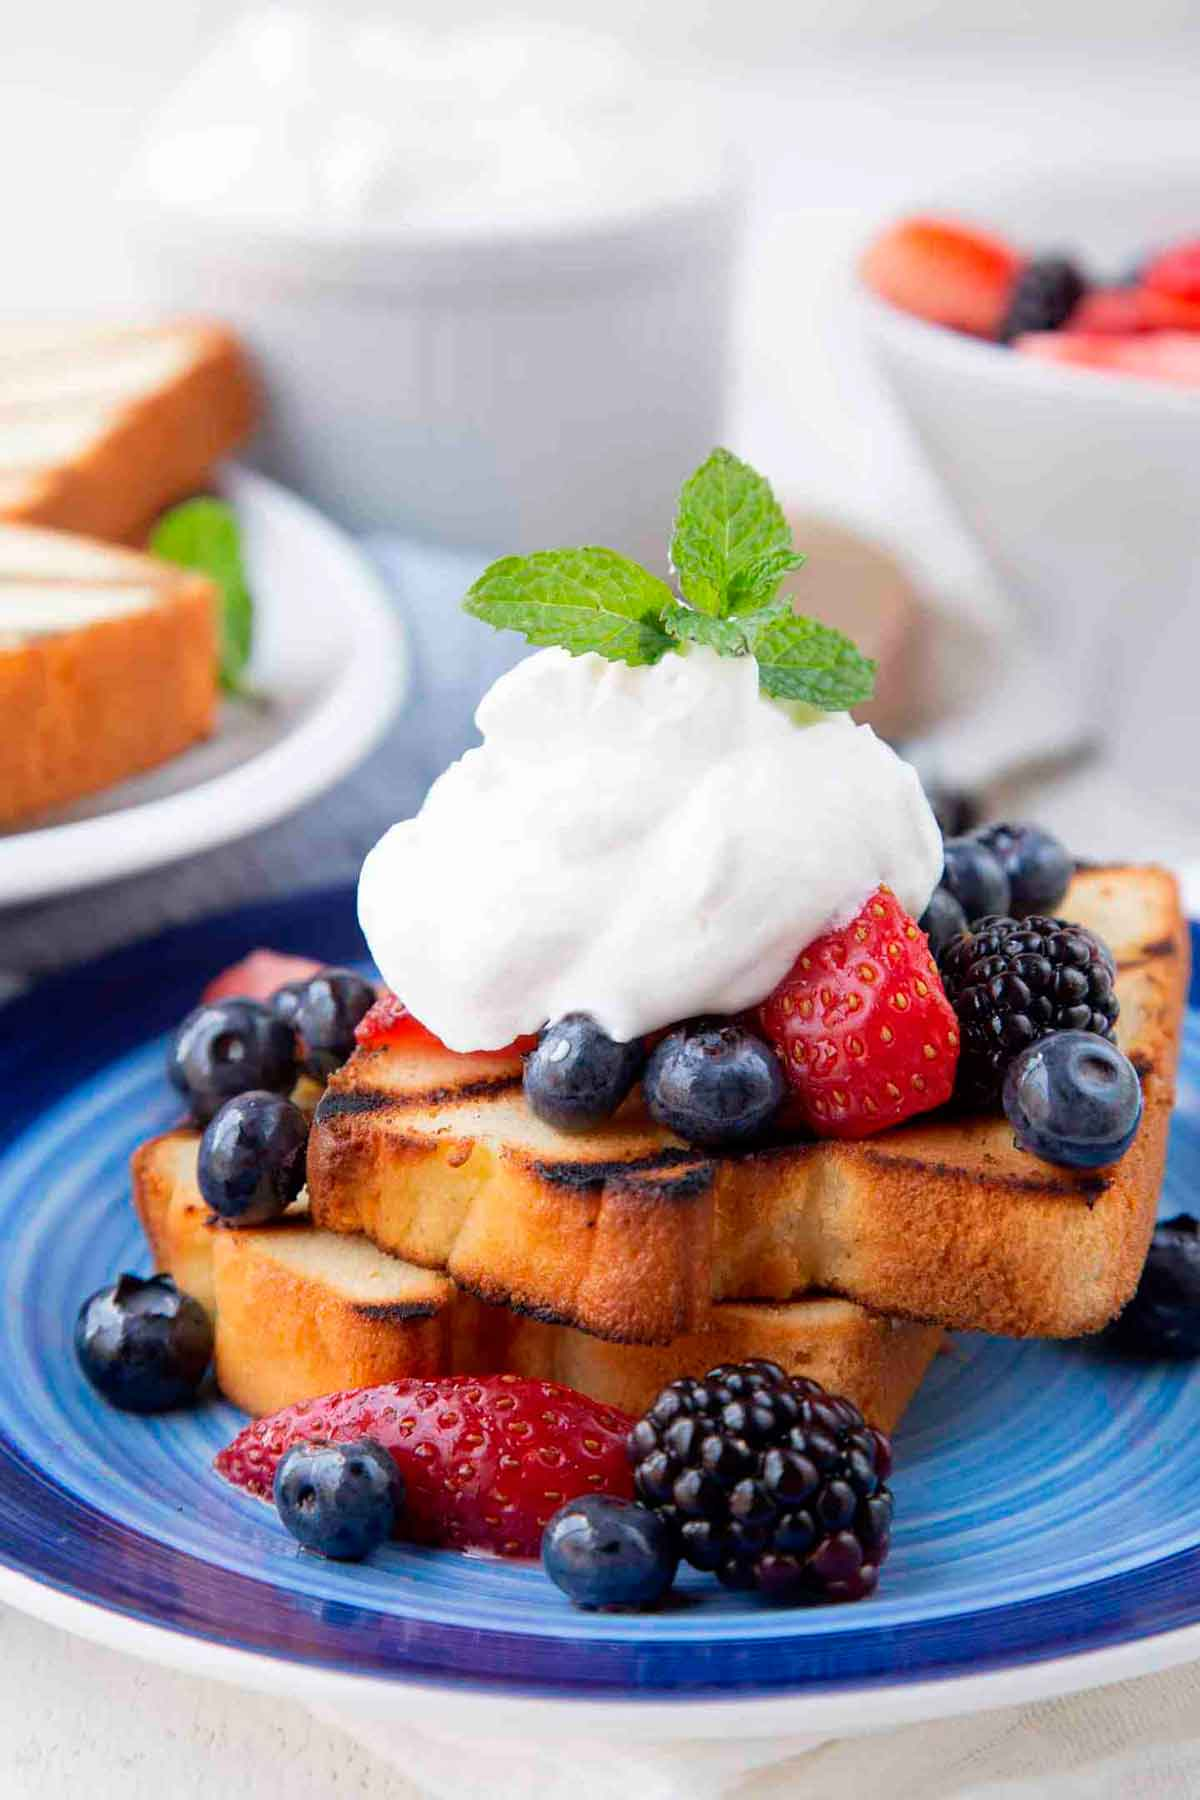 2 slices of pound cake, topped with berries and whipped cream on a plate.